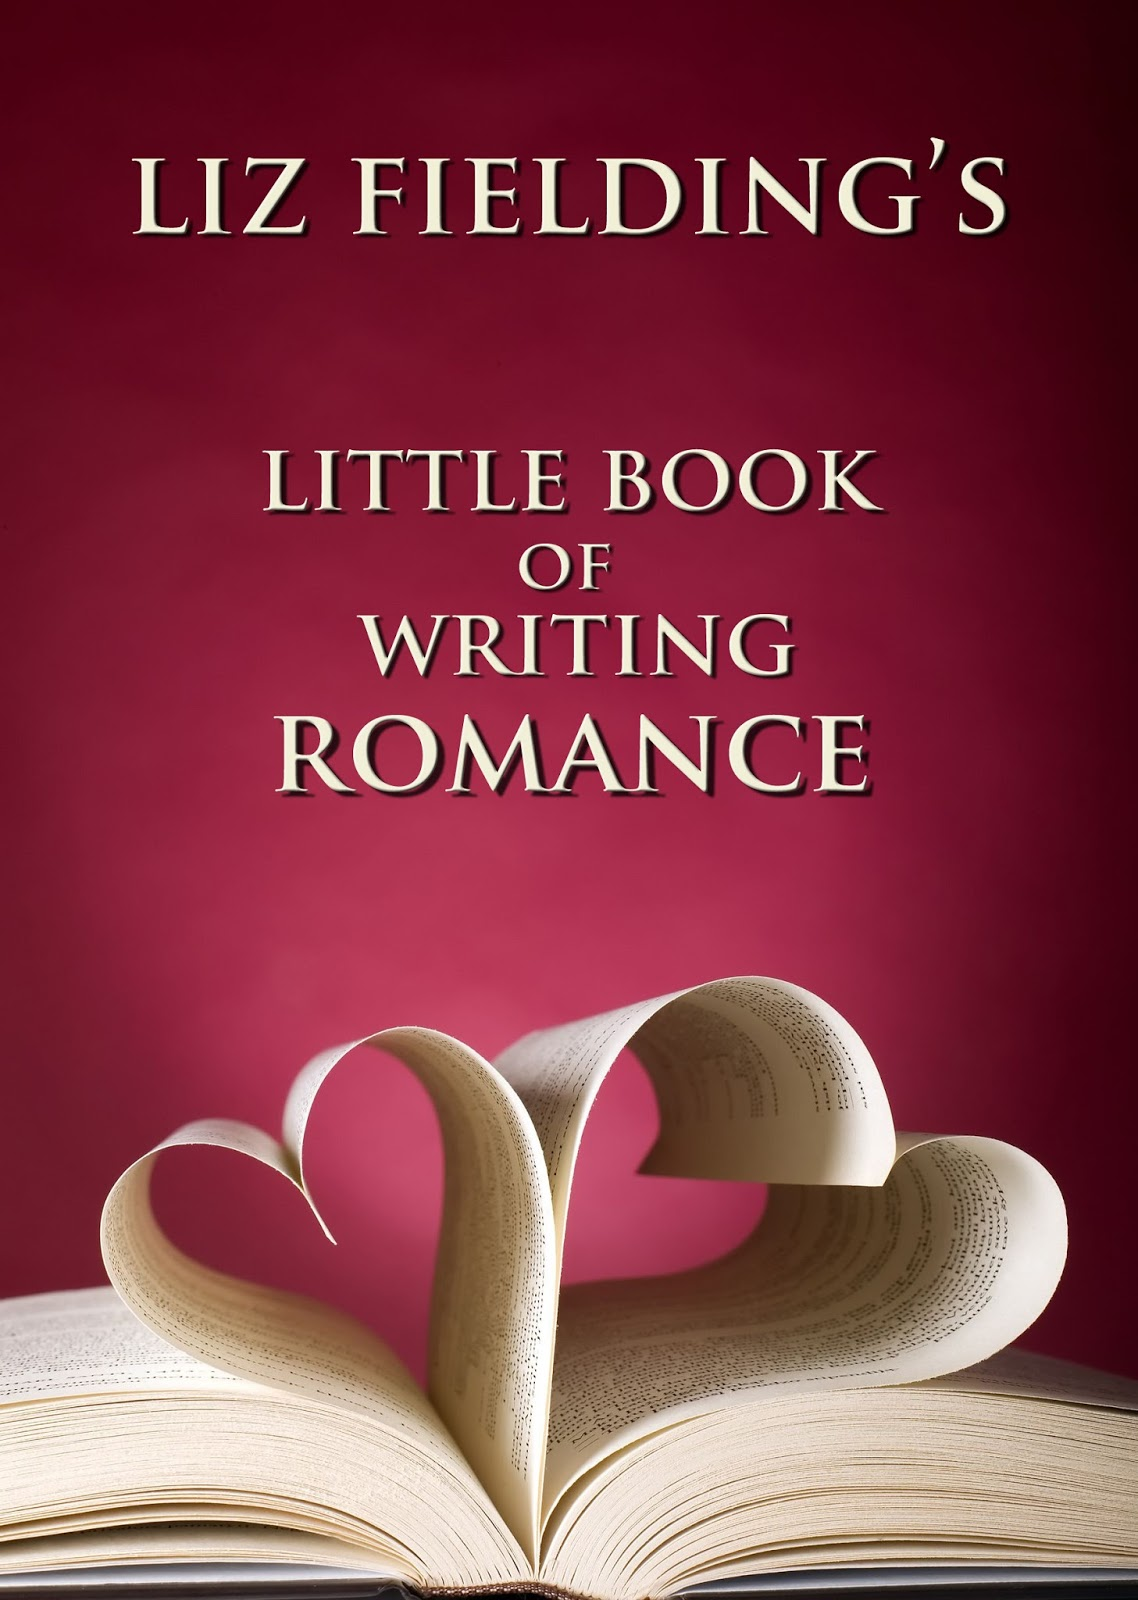 writing romance novels Library must demonstrate a plan or examples for use of the funds, such as  hosting a system-wide training day on the romance genre, buying romance  novels for.